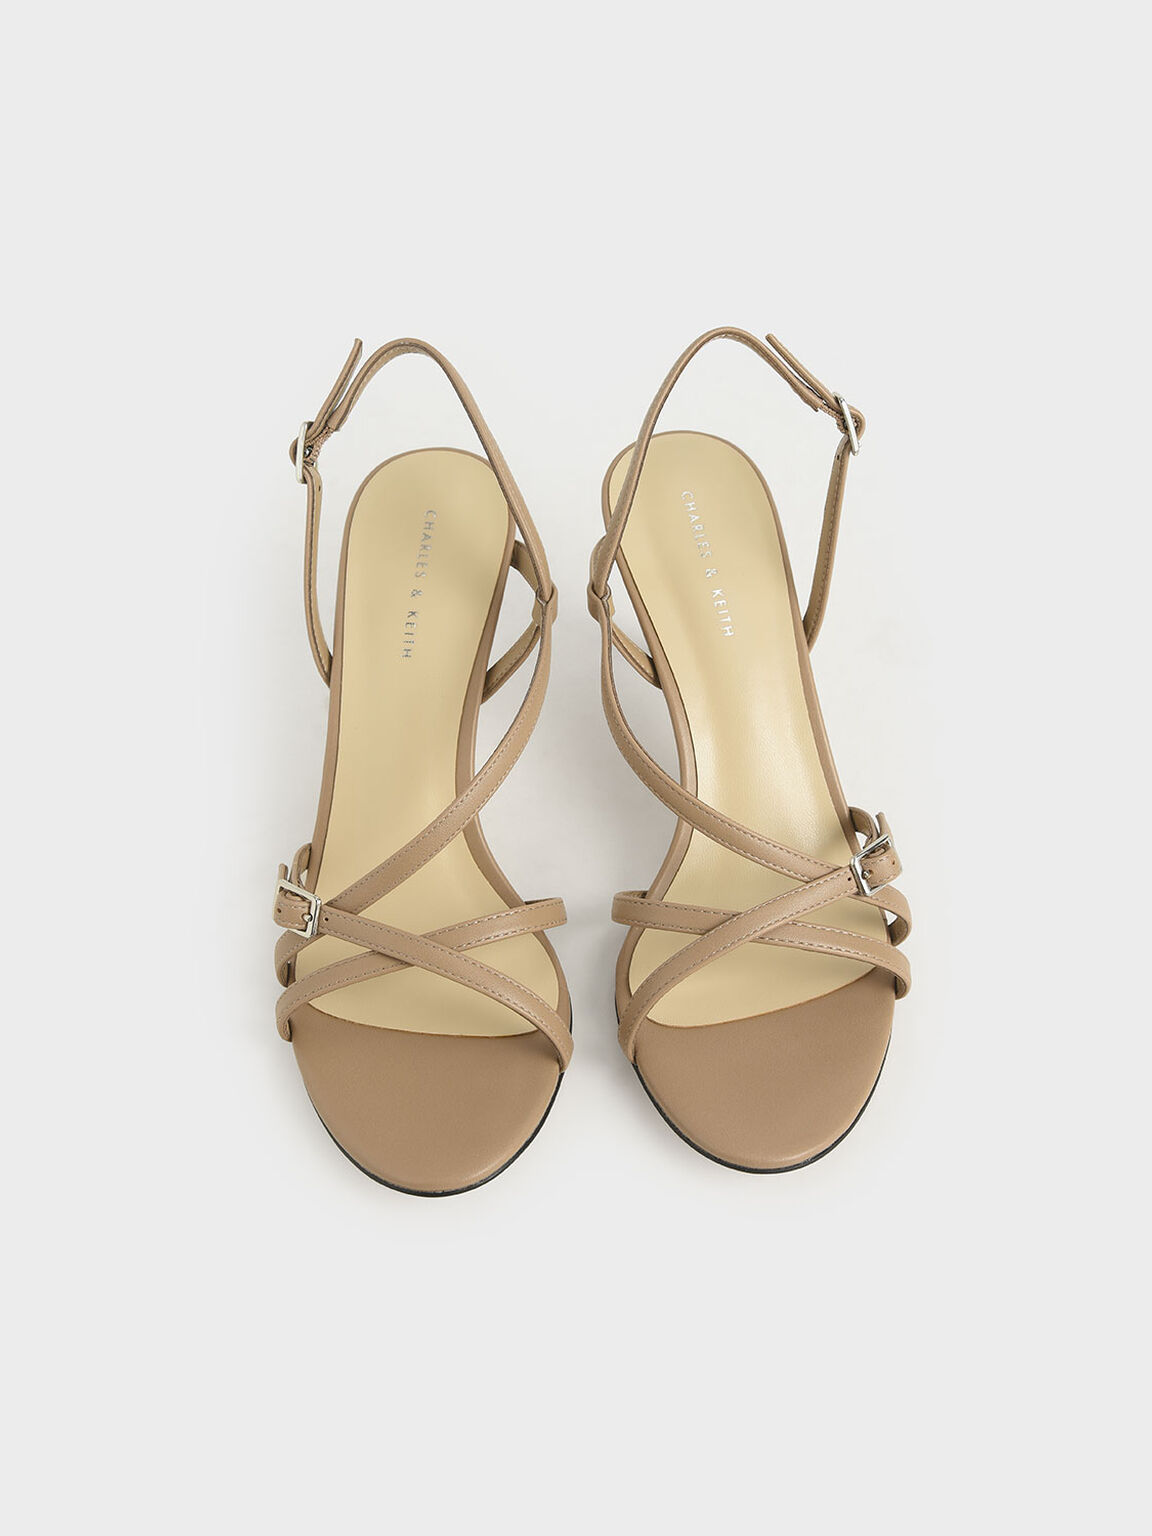 Strappy Slingback Heeled Sandals, Taupe, hi-res